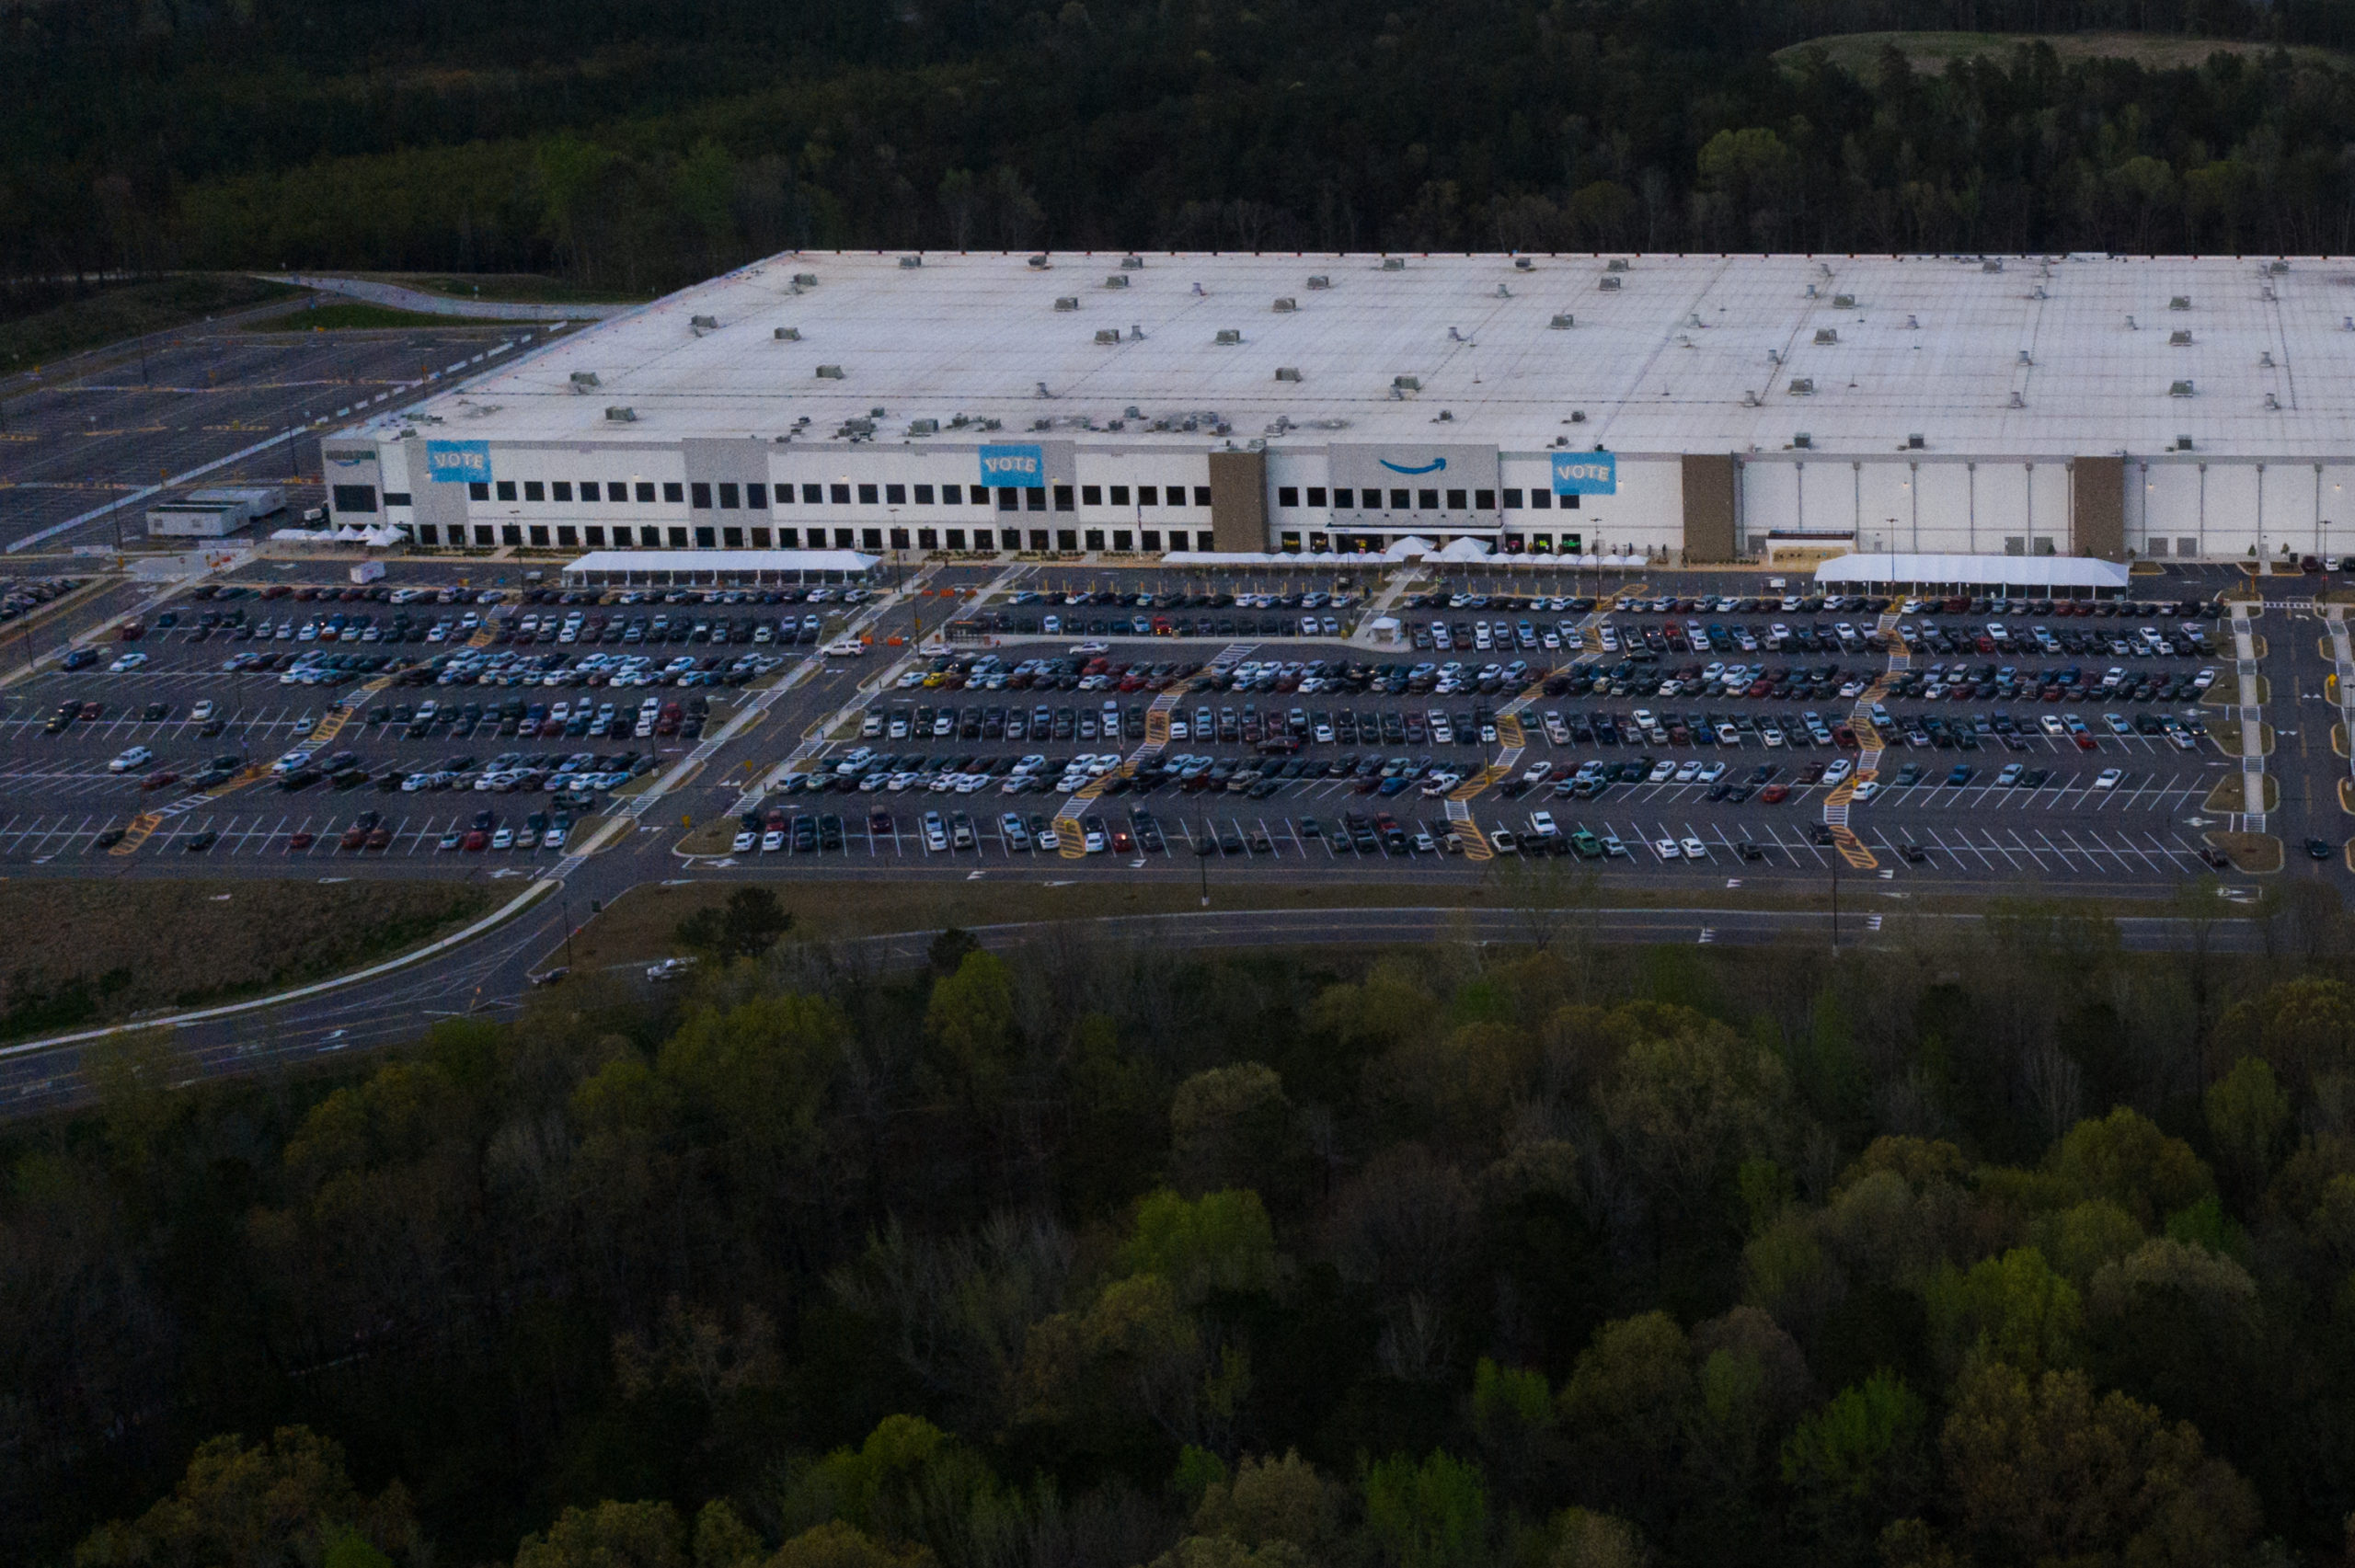 The Amazon fulfillment warehouse in Bessemer, Alabama is seen on March 28. (Elijah Nouvelage/Getty Images)